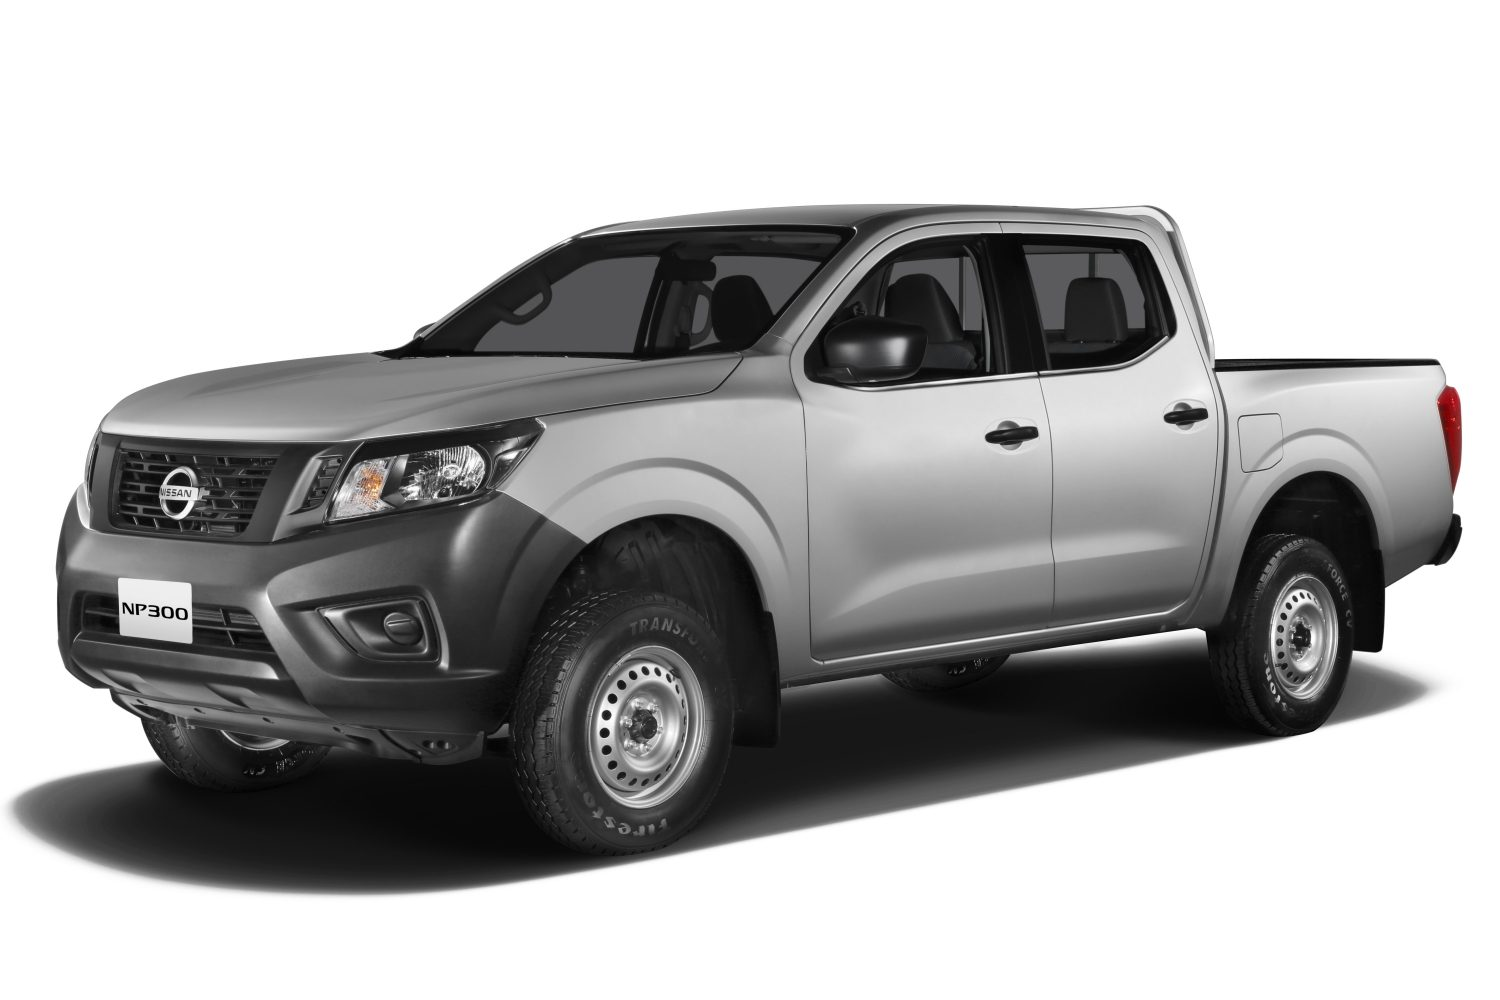 Nissan Frontier Gasolina | Pick Up | Nissan Colombia